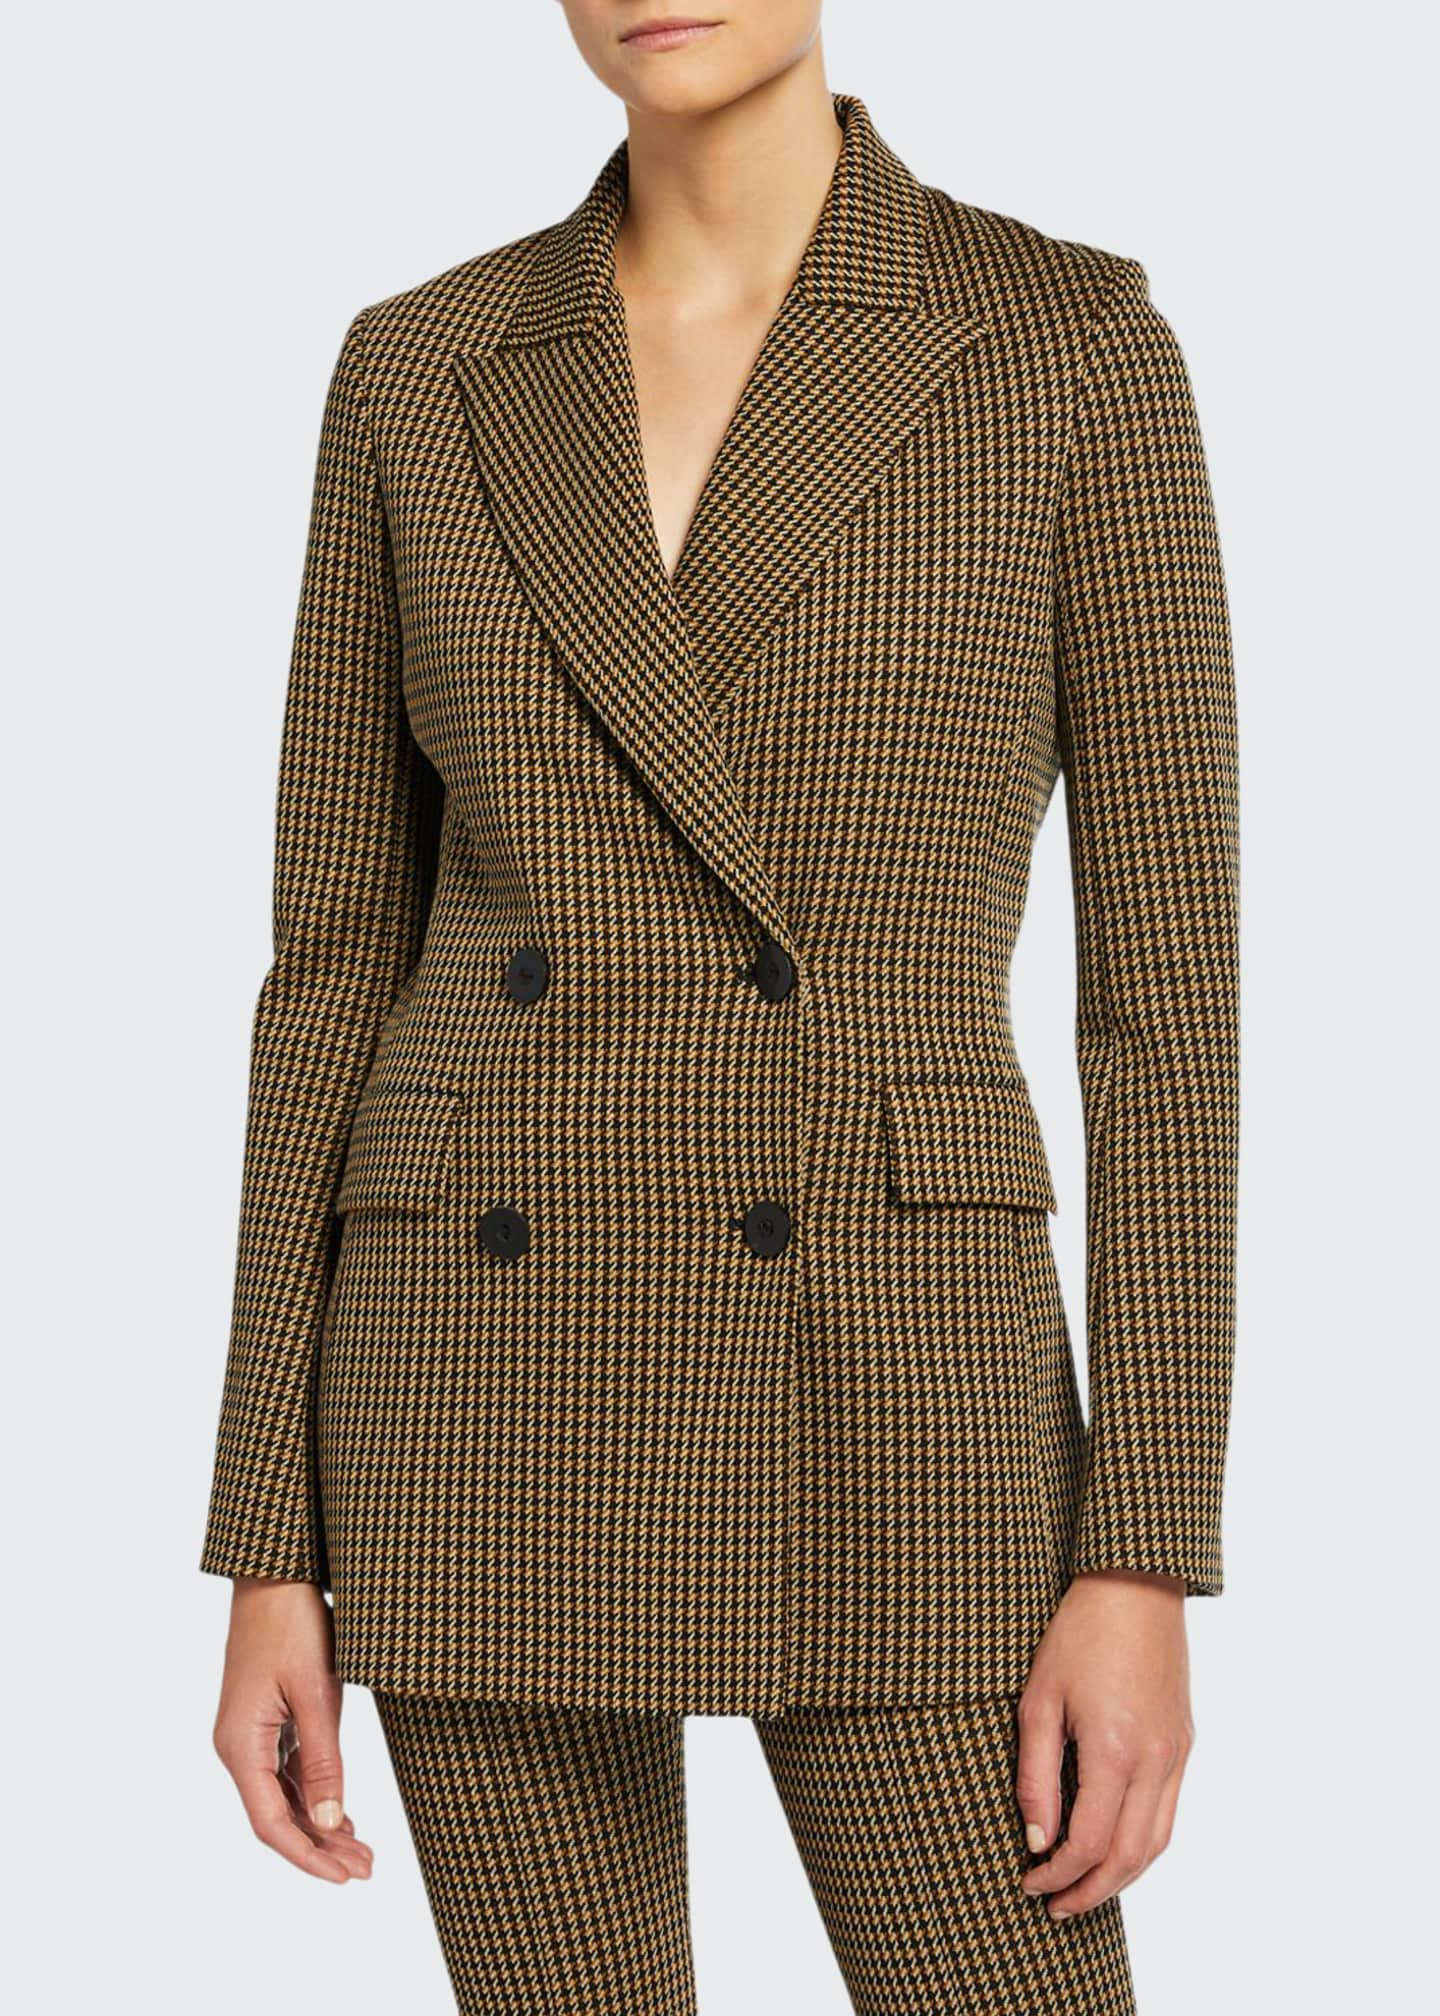 Rosetta Getty Houndstooth Double-Breasted Jacket with Peak Lapels